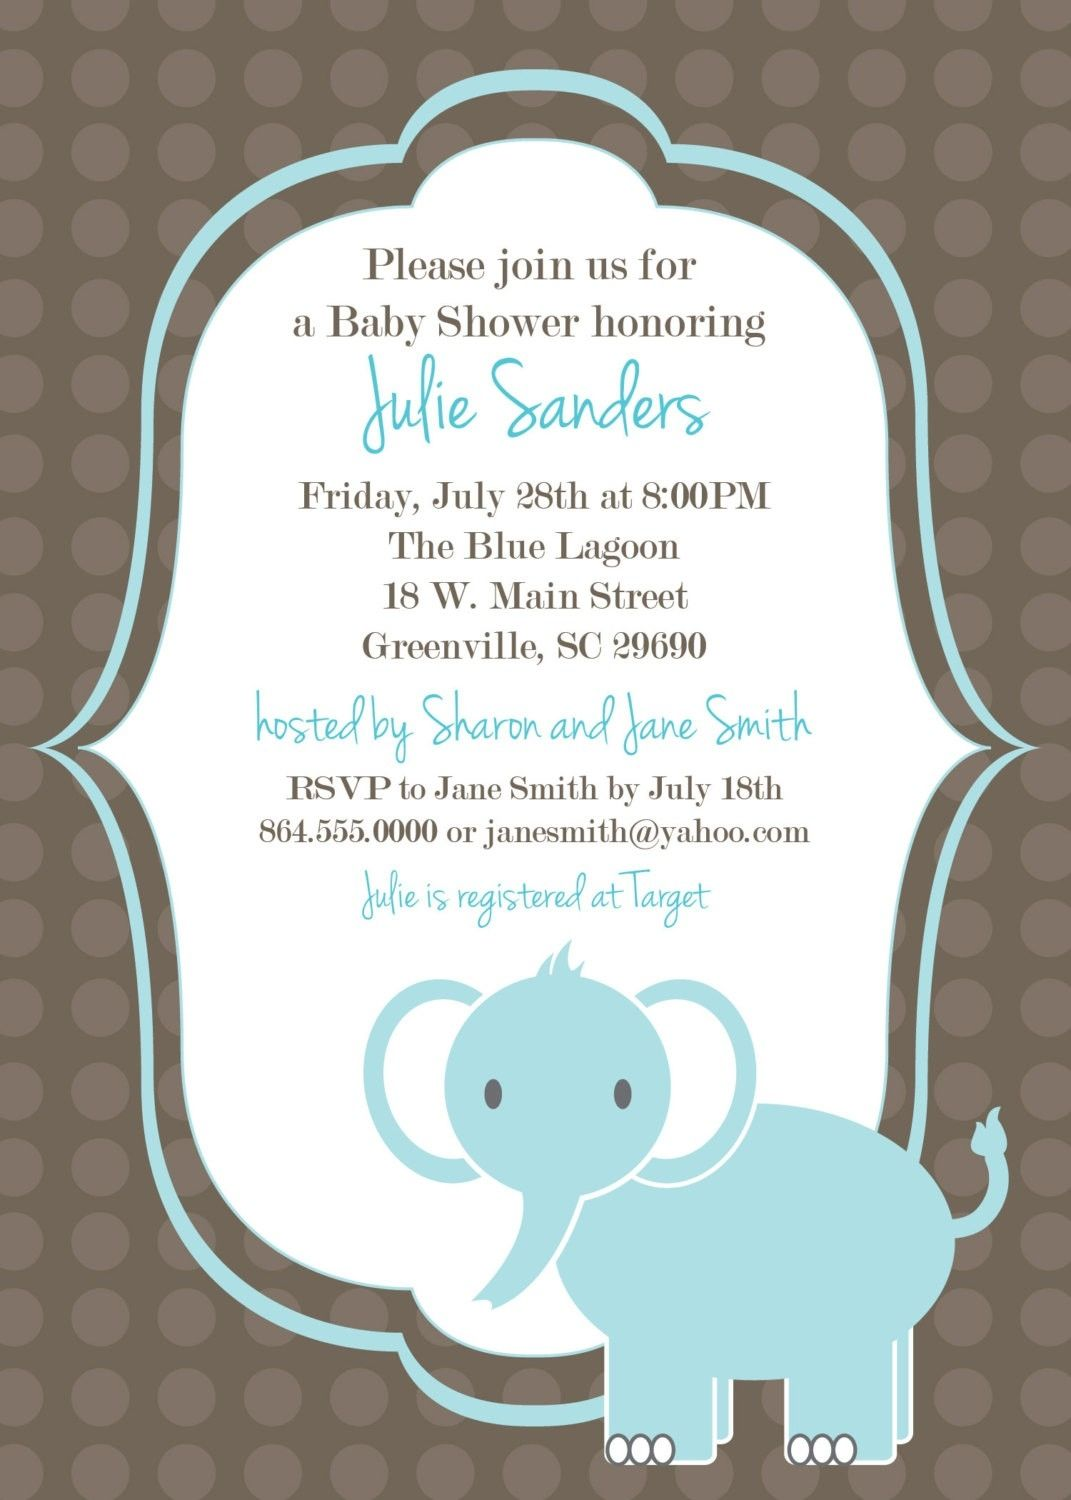 Baby Shower Invitations For Word Templates Stunning Download Baby Shower Invitation Templates Word  Setup  Pinterest .